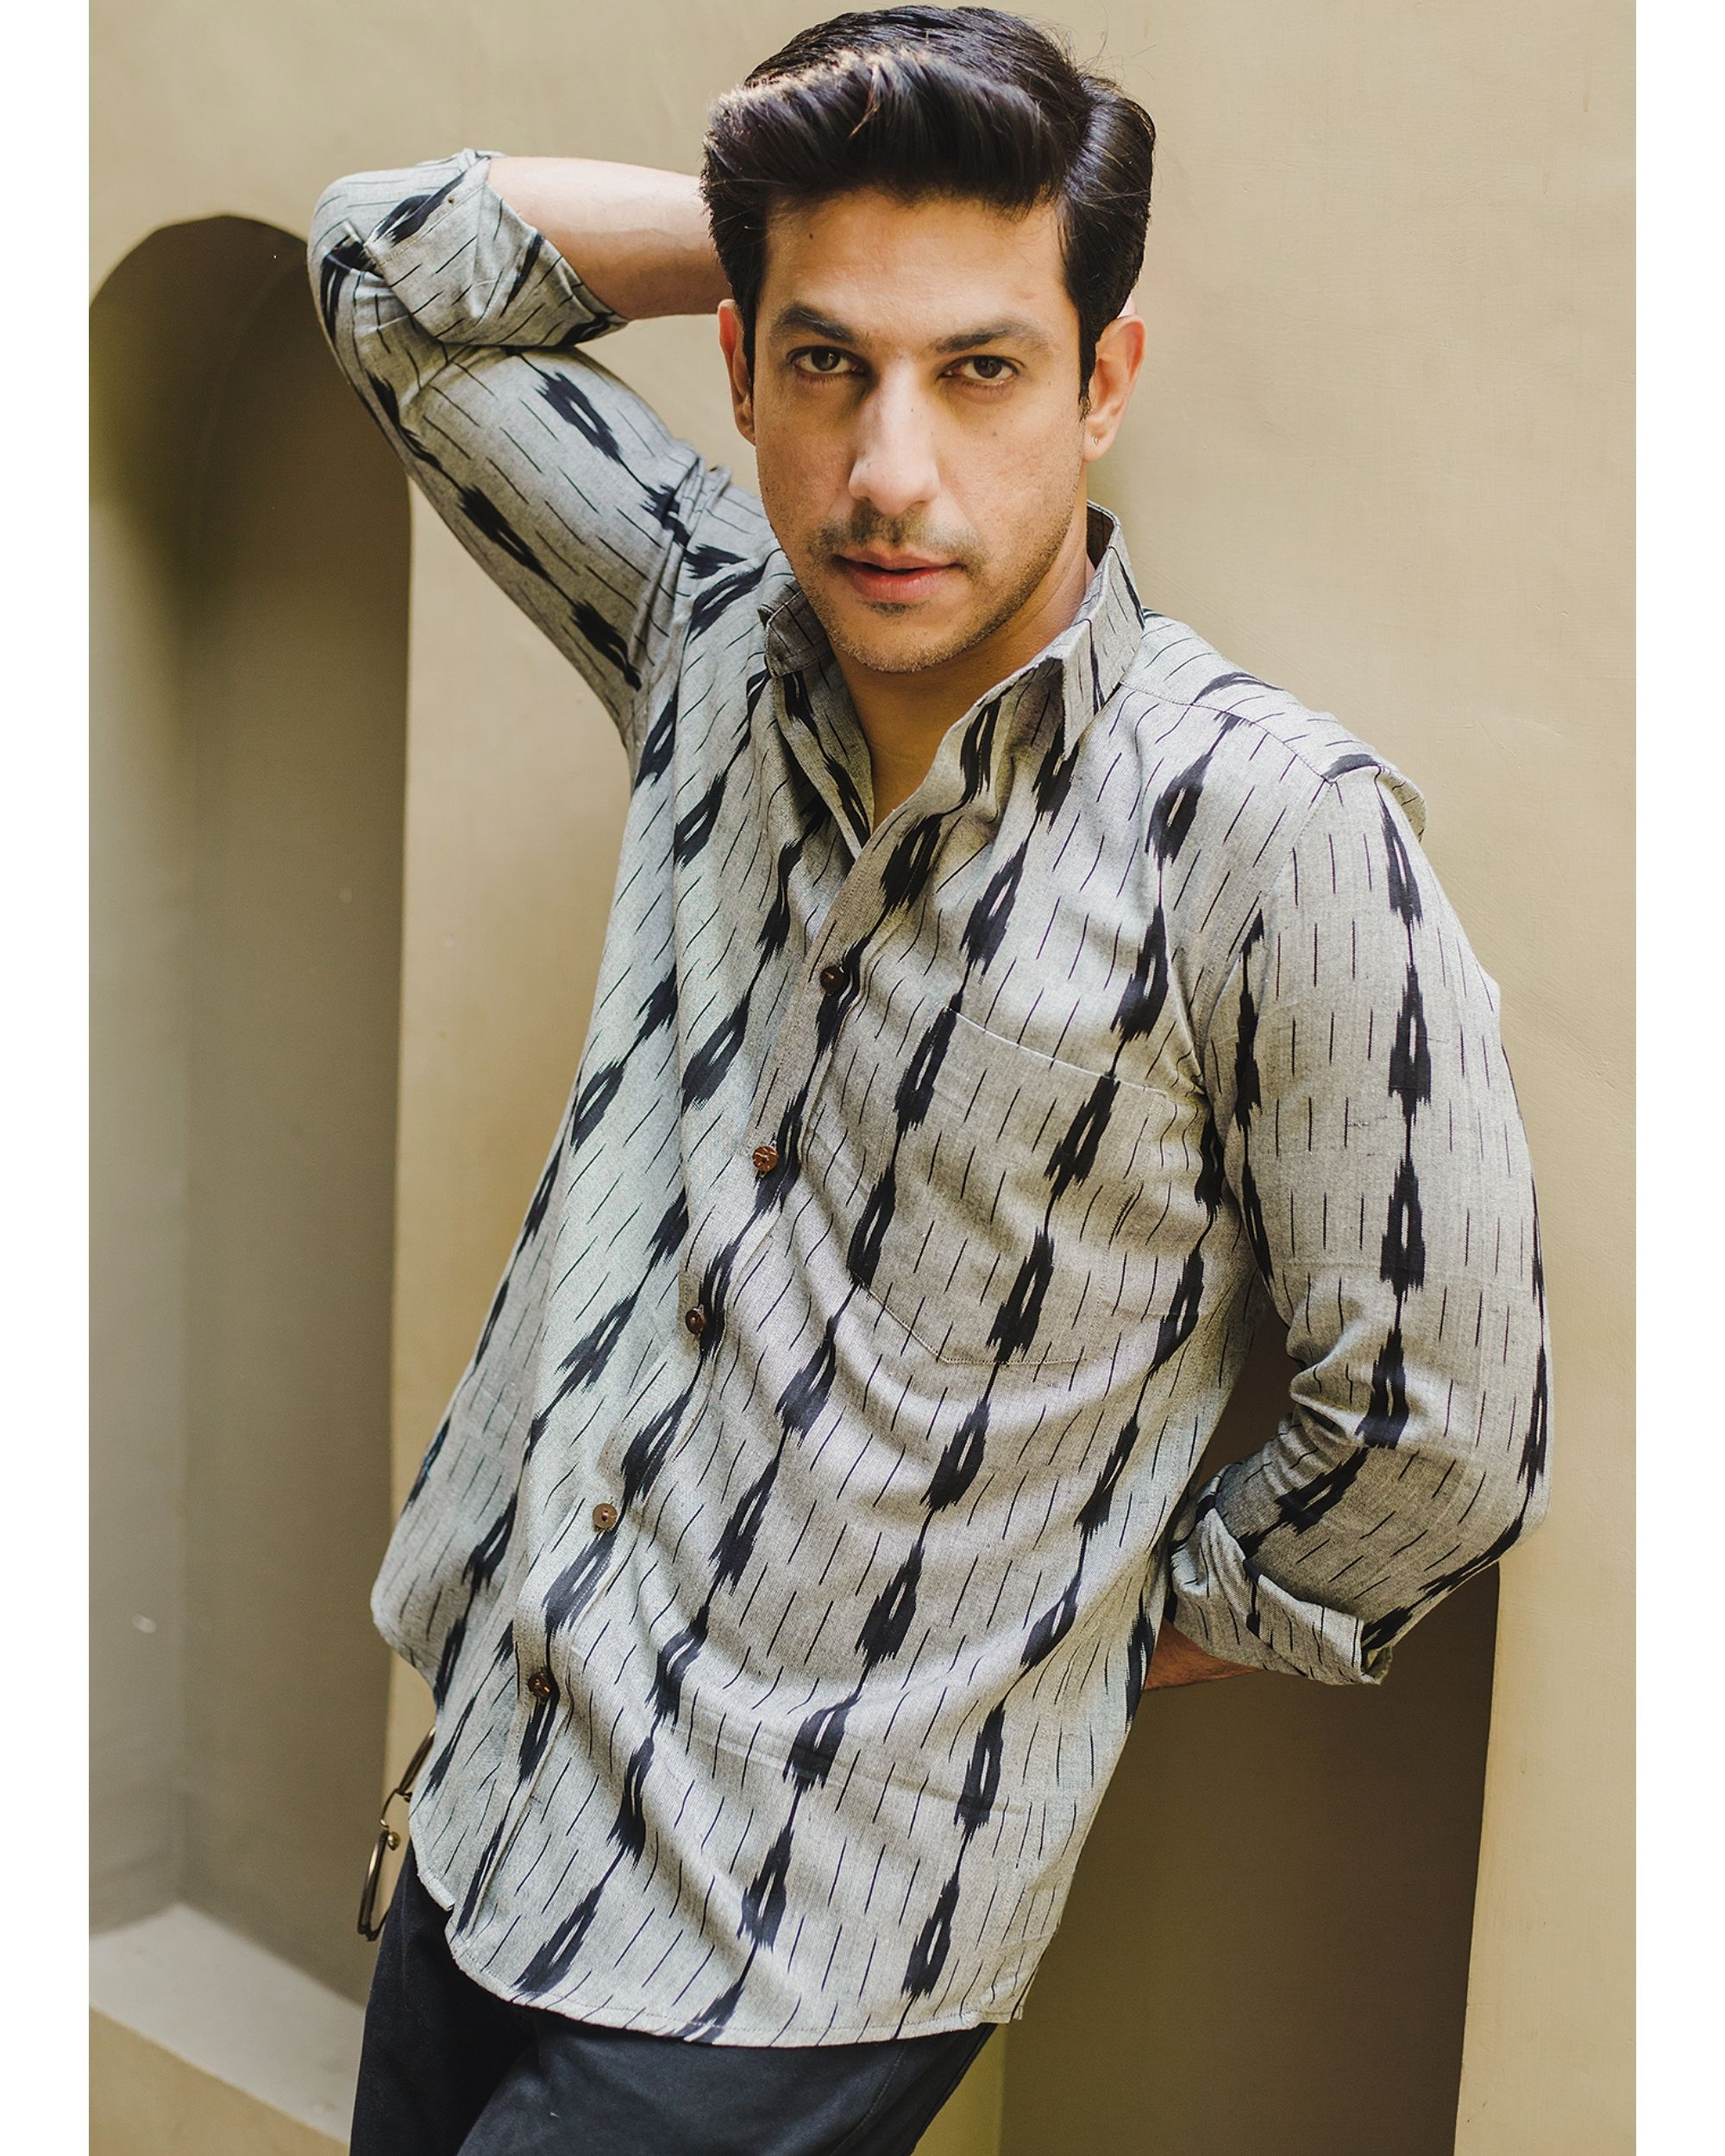 Grey and black double striped ikat shirt